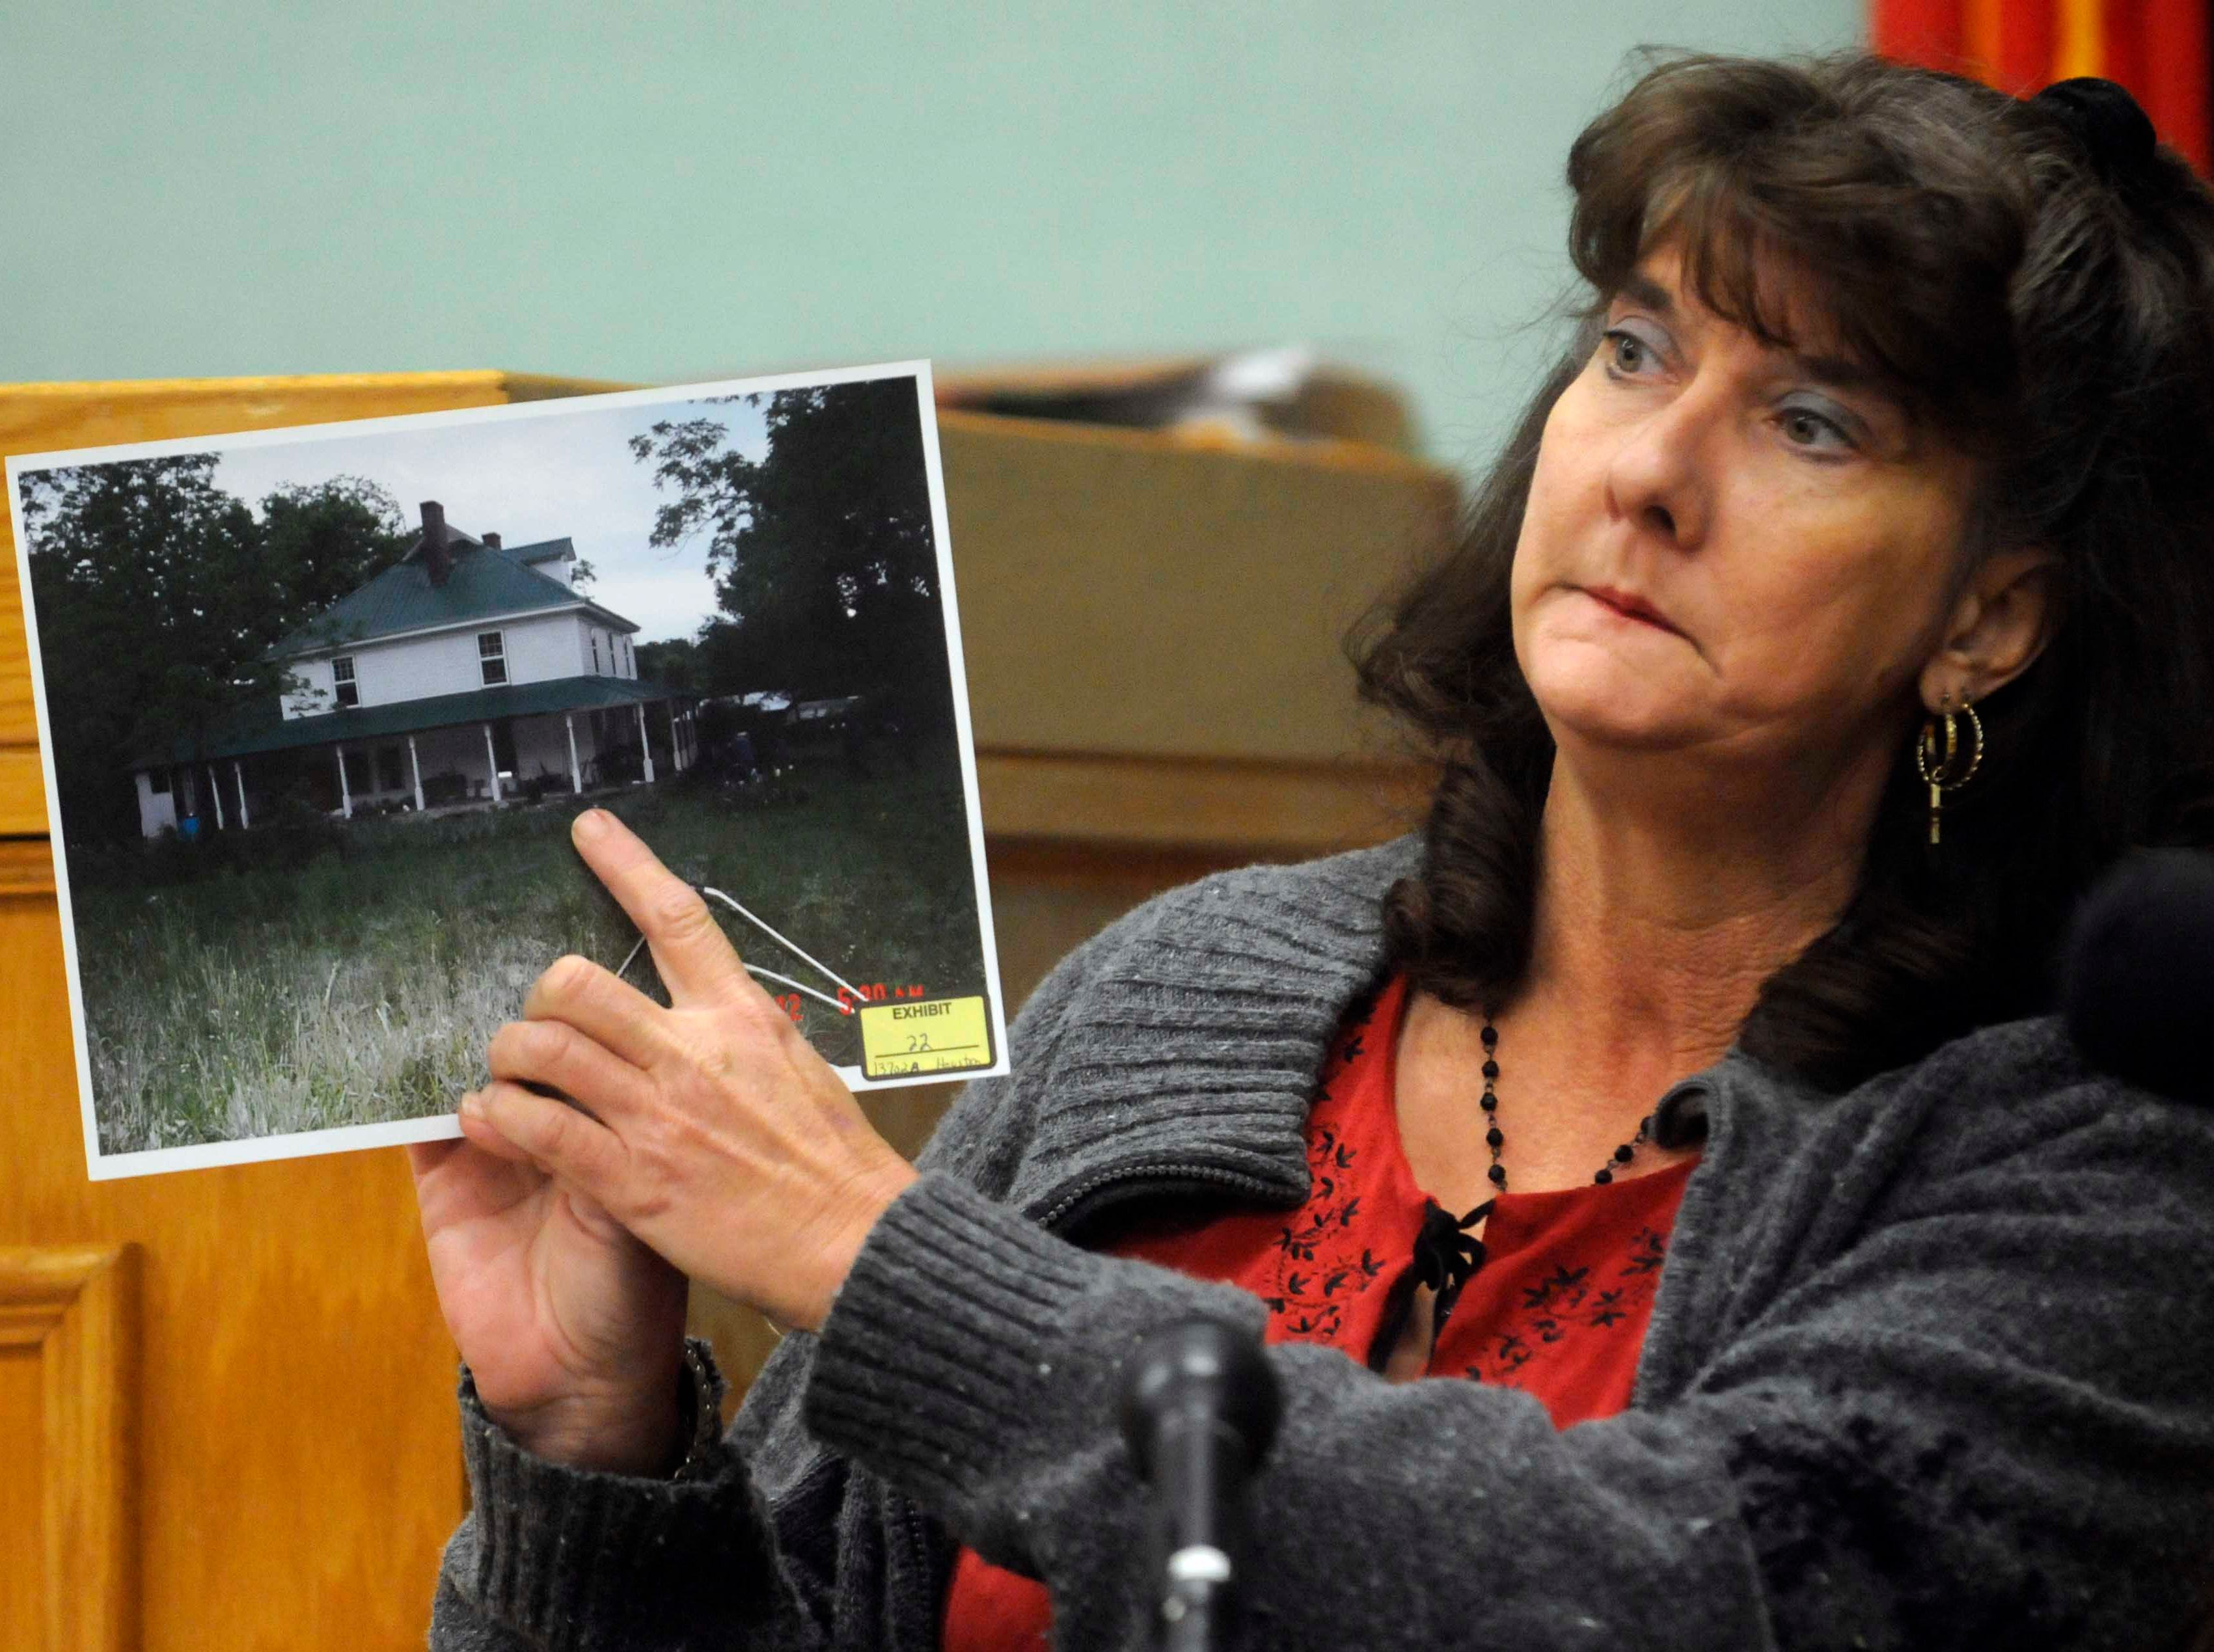 Ann Watts points to a photograph as she described where she was sitting the day of the shooting on Barnard Narrows Road in May 2006.  Testimony continued Friday, Nov 6, 2009 in the double murder trial of Clifford Leon Houston in Roane County Circuit Court. Houston is accused of the May 2006 ambush murders of Roane County Sheriff's Office Deputy William Birl Jones, 53, and his ride-along friend Gerald Michael Brown, 44.